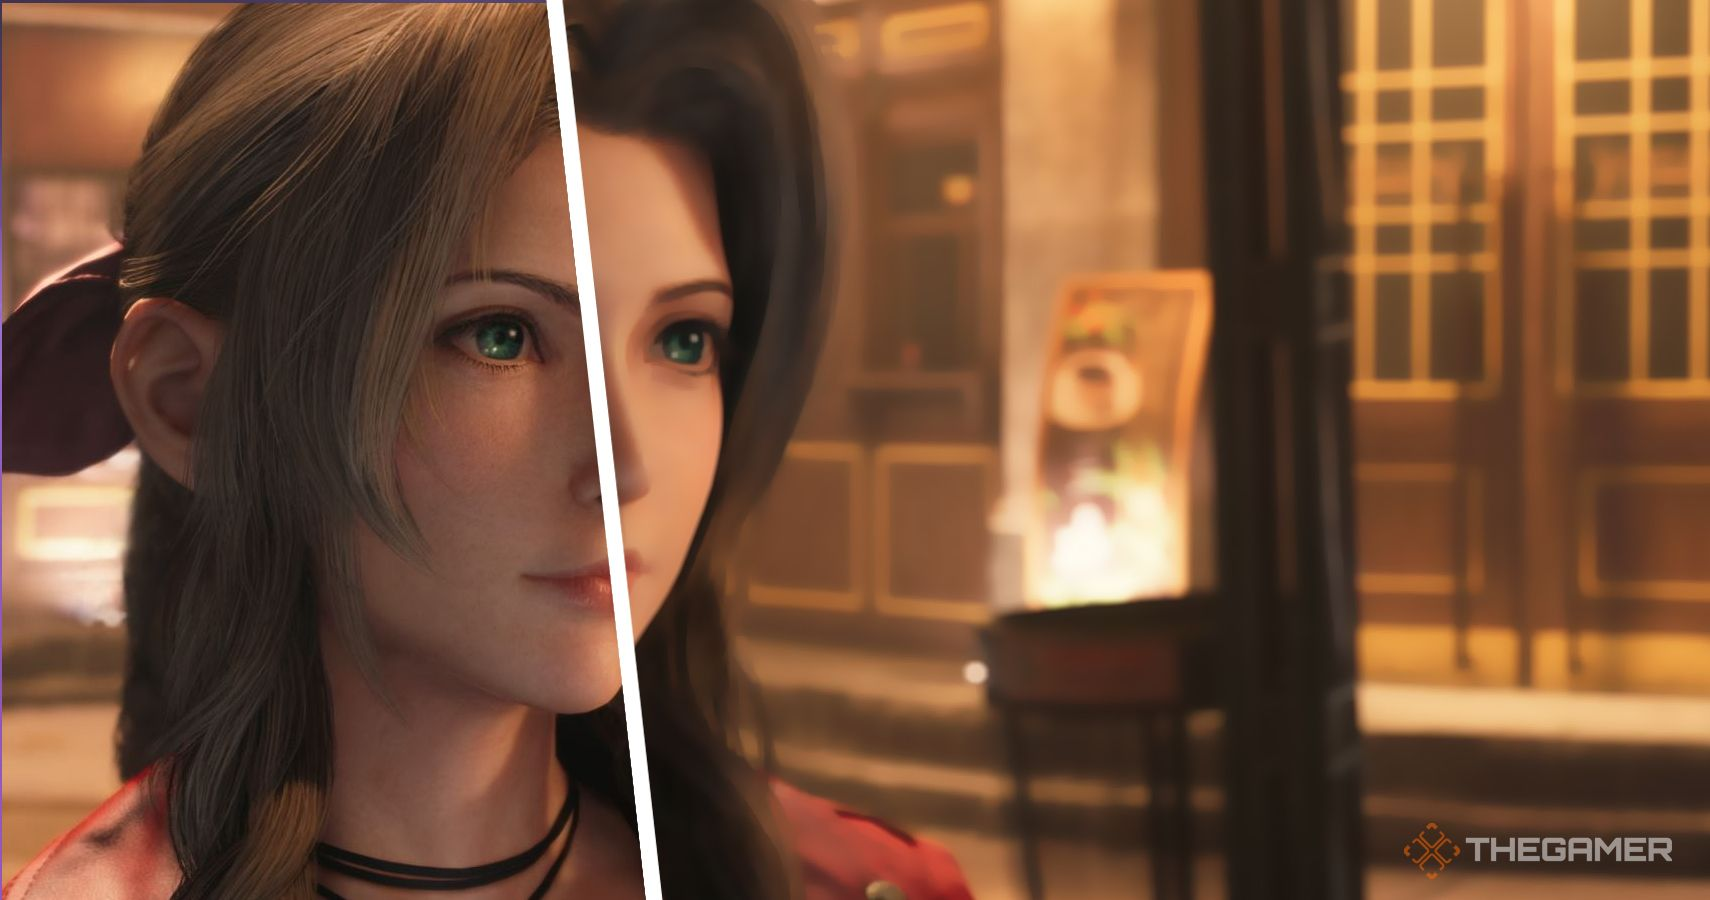 Final Fantasy 7 Remake Intergrade – Should You Use Graphics Or Performance Mode?